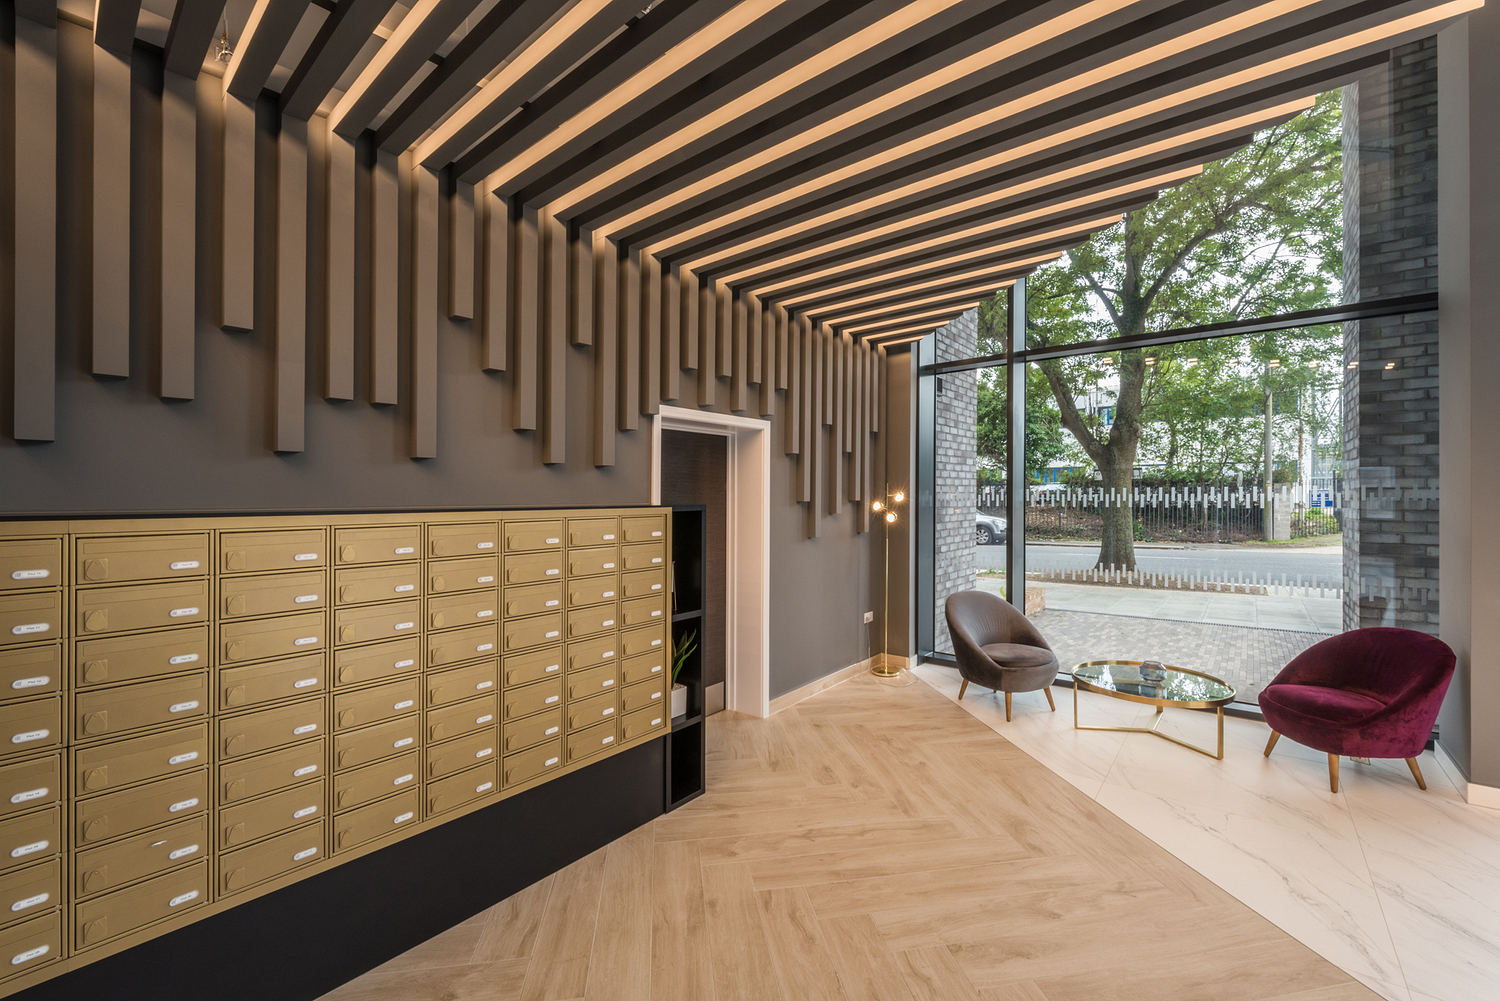 Concierge area with brass lockers, London